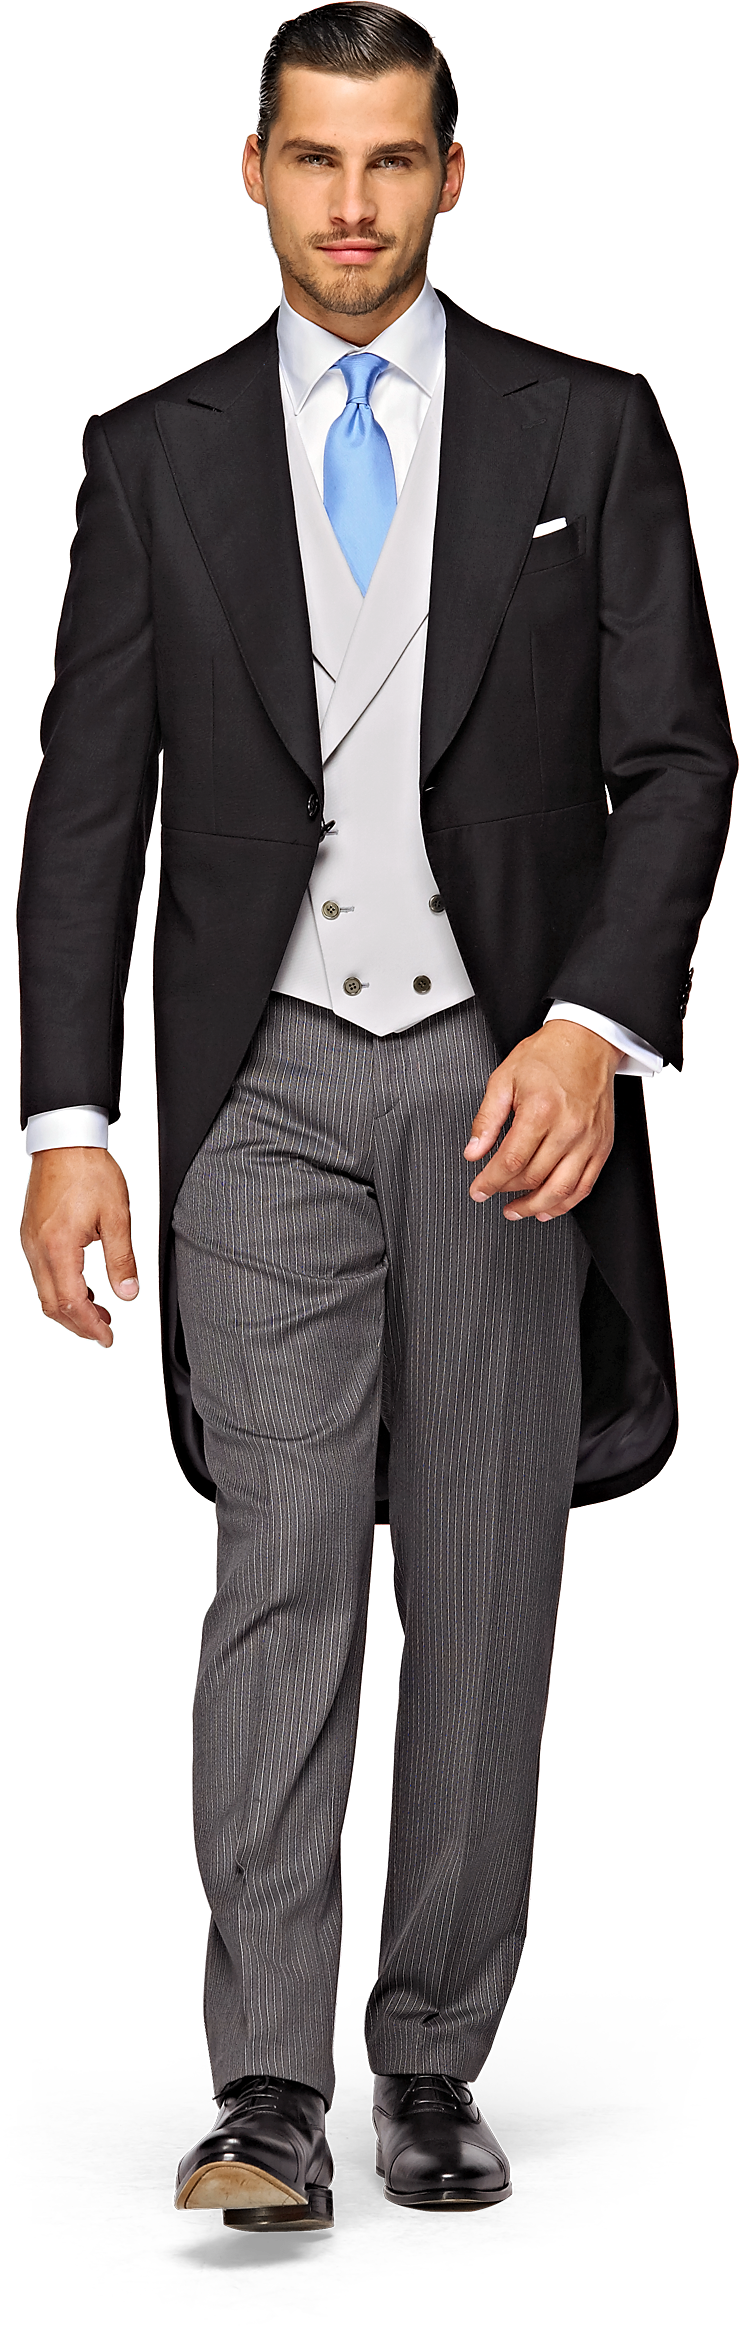 What S The Best Place To Find A Morning Suit For Weddings In Usa